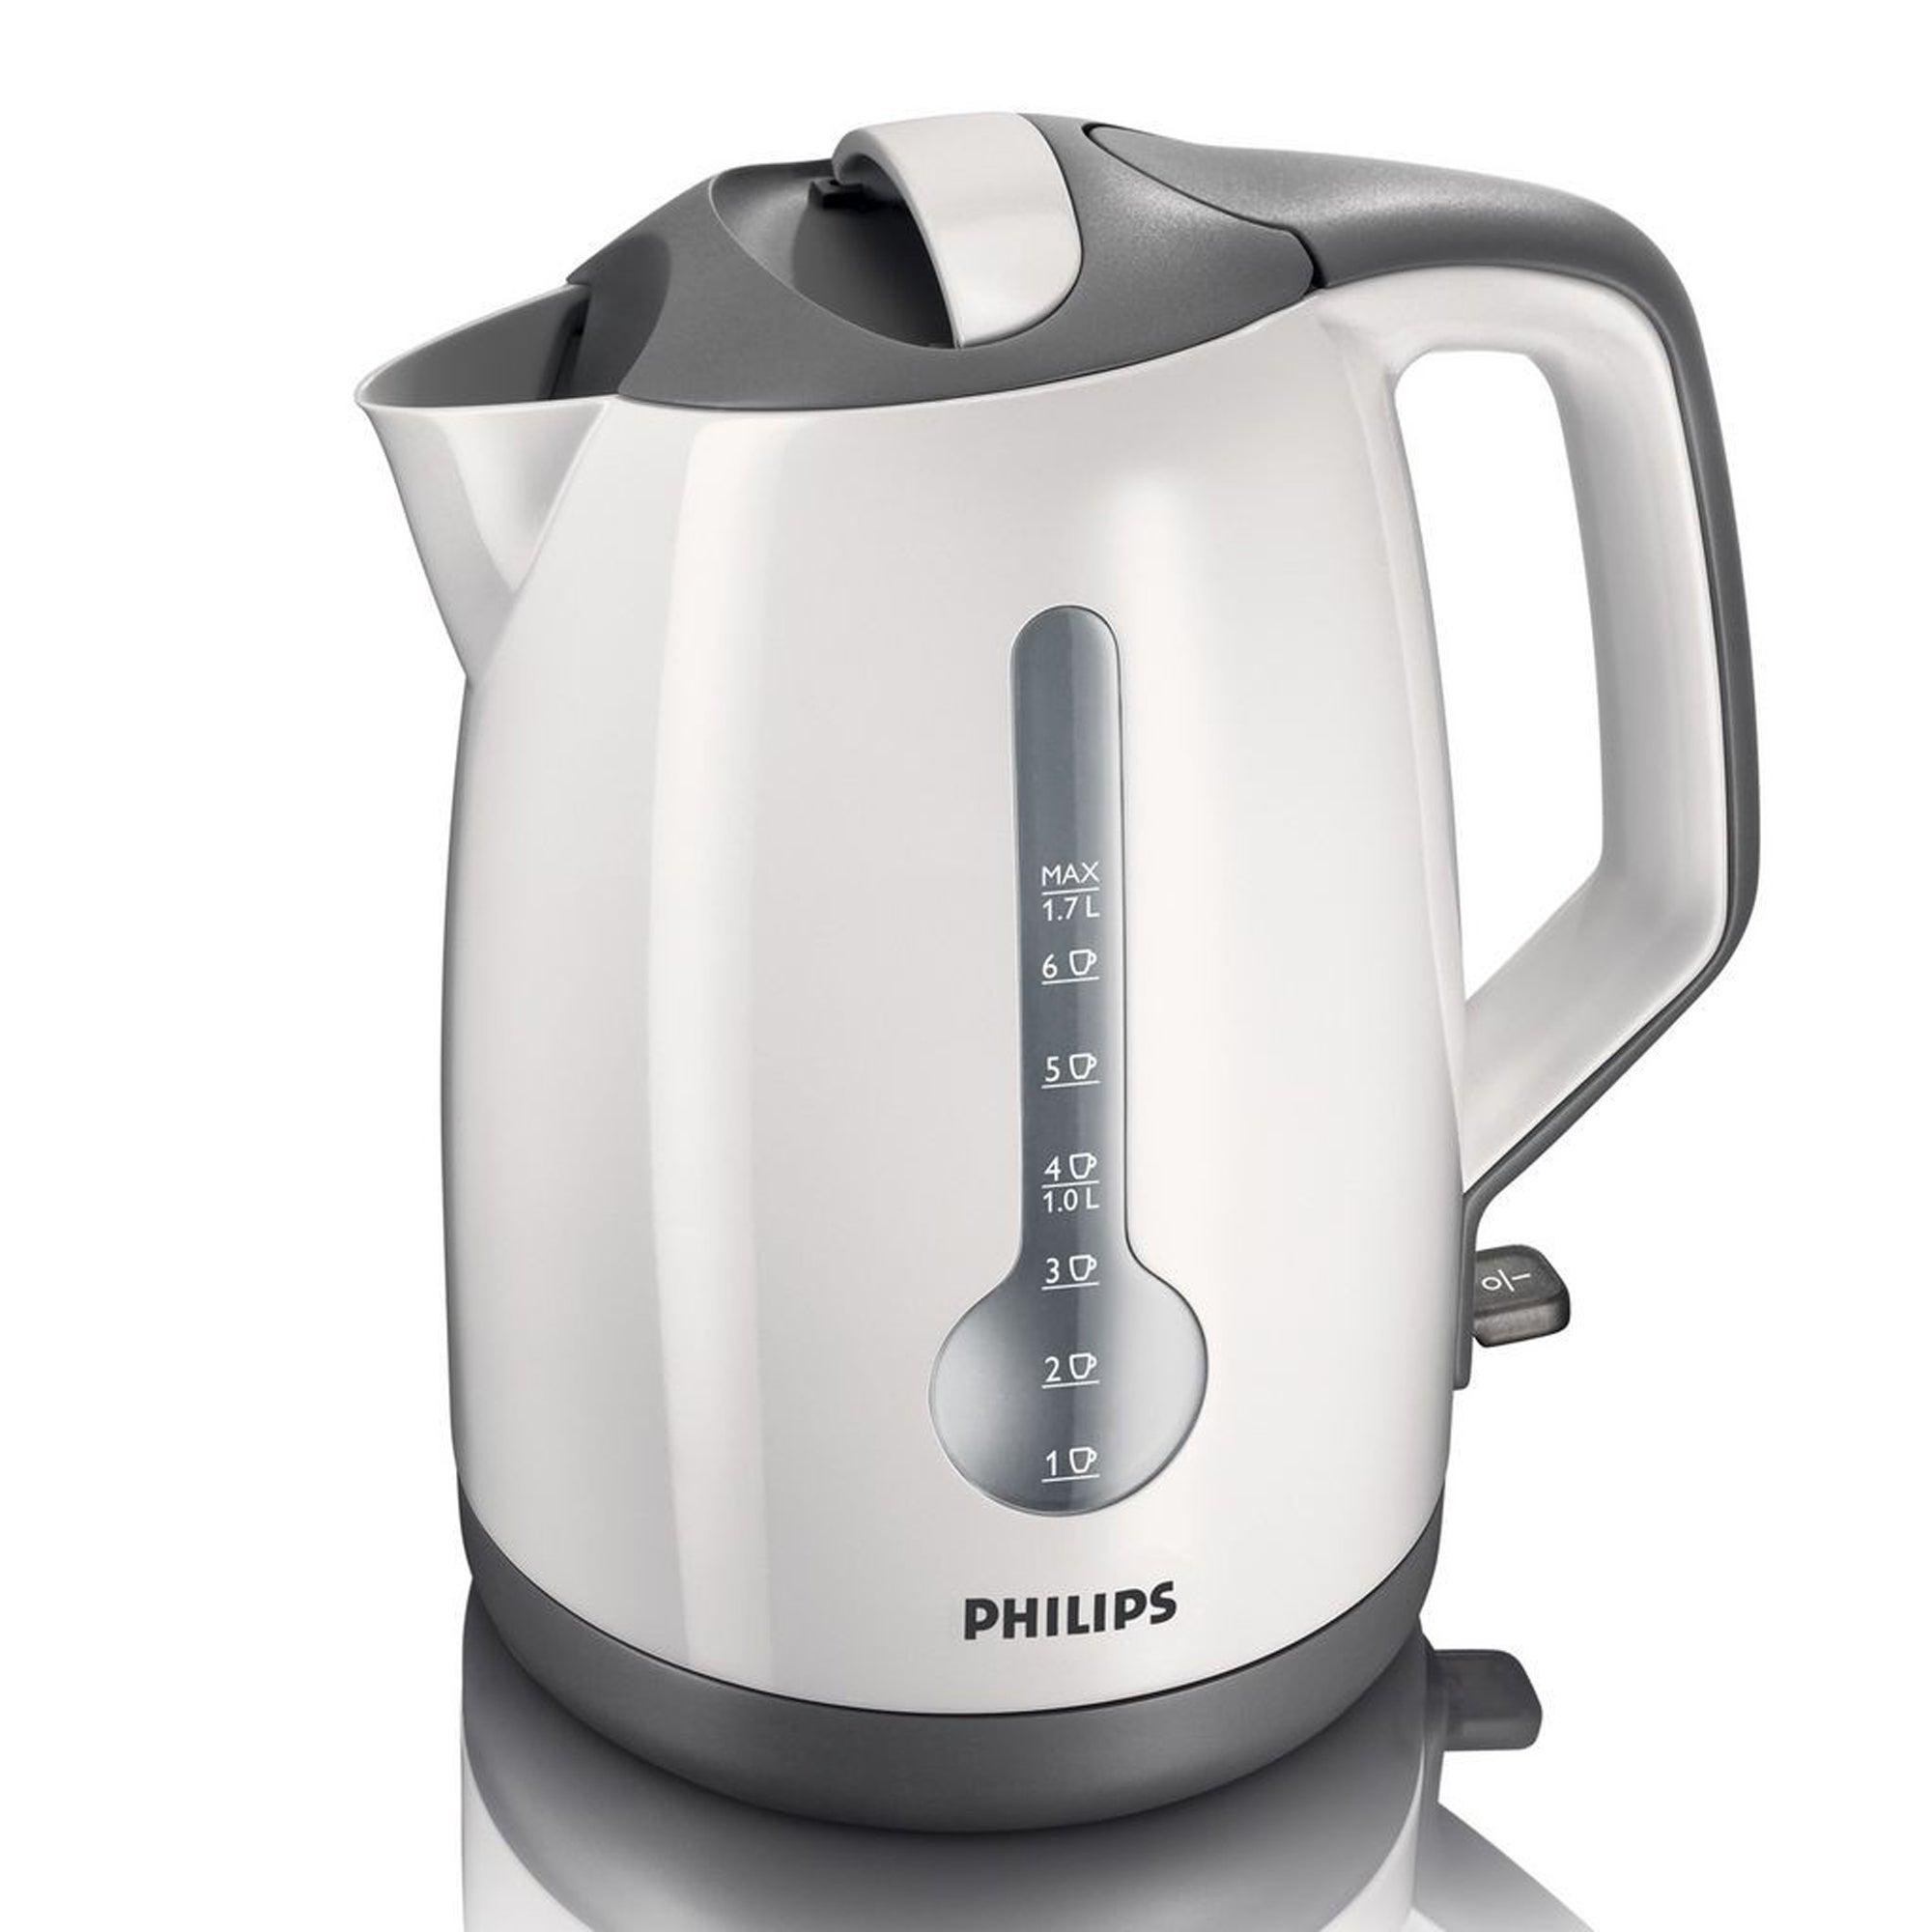 Philips One Cup Eco Kettle